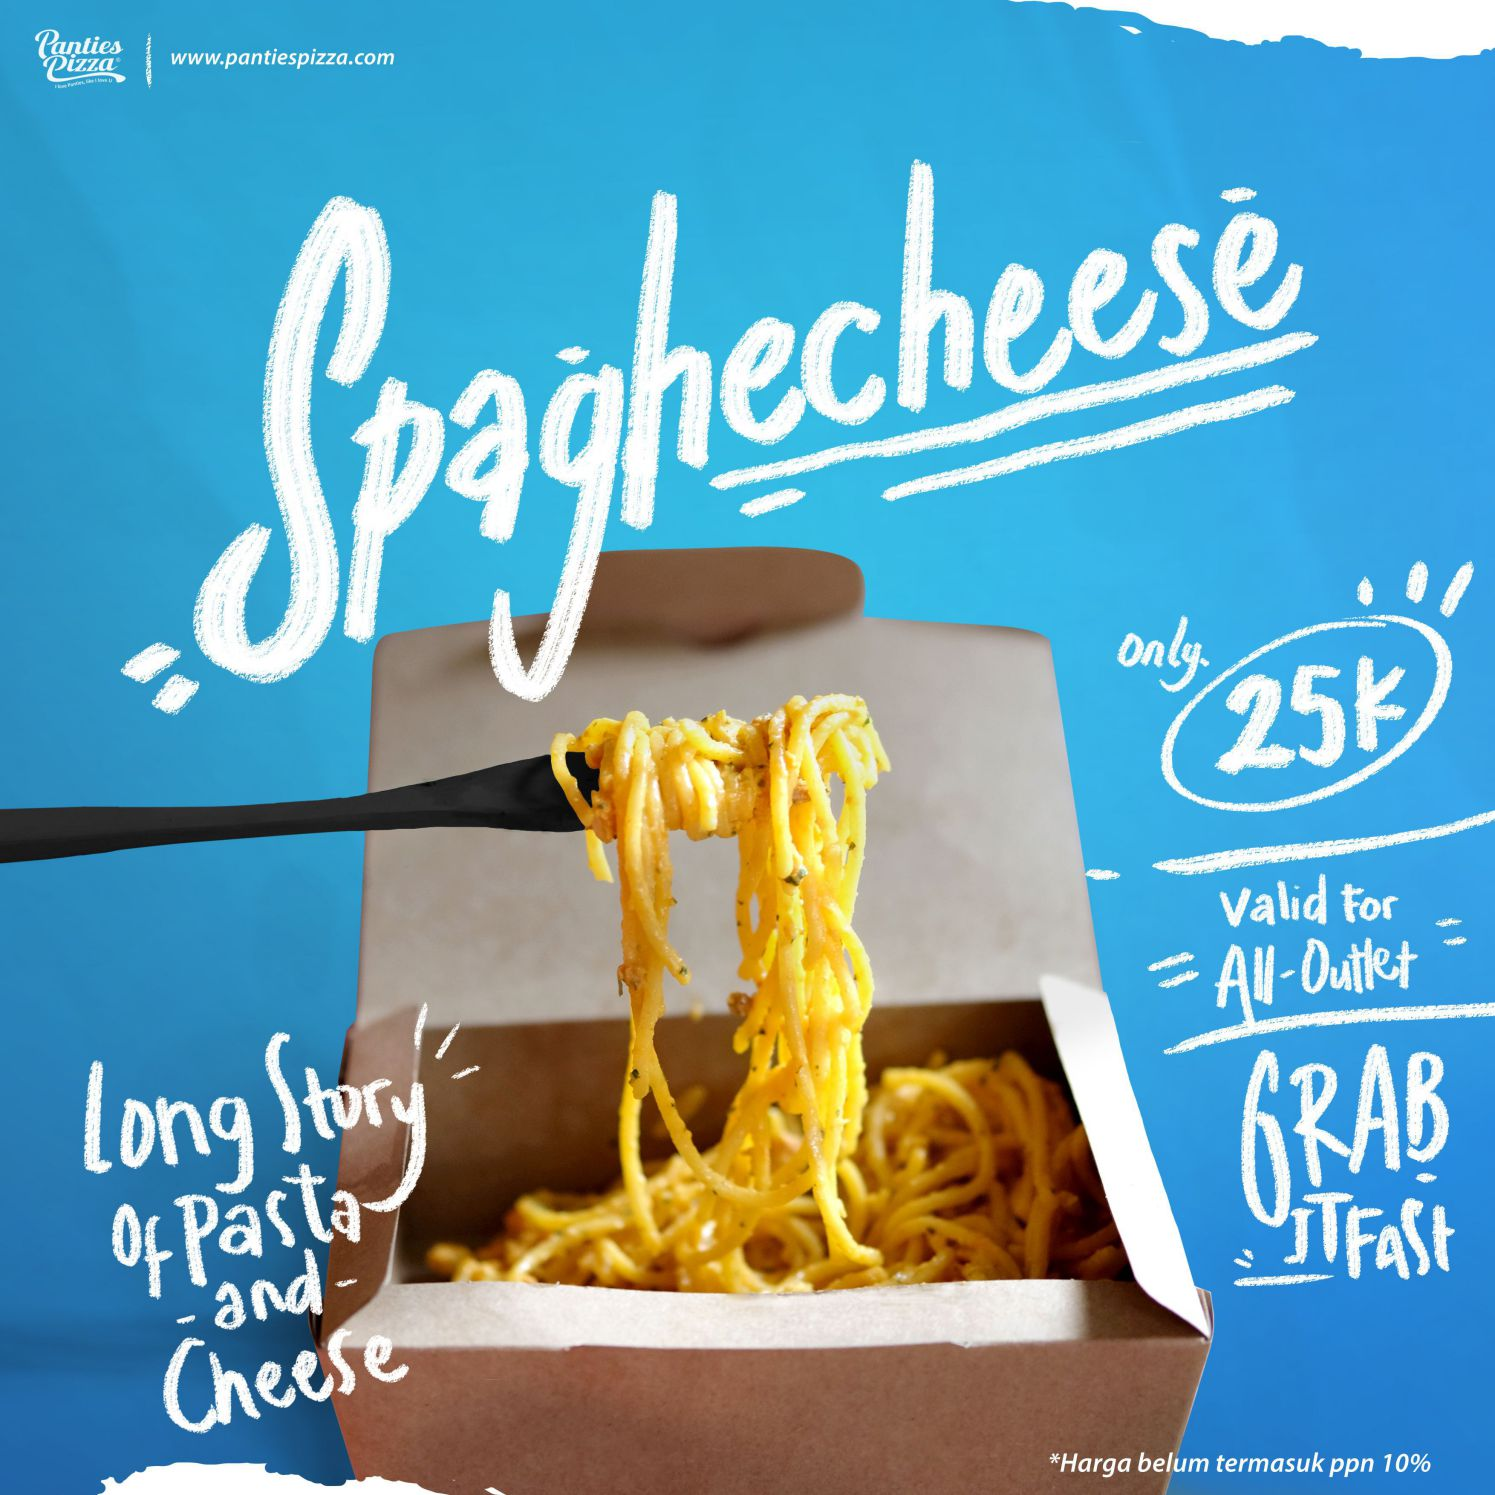 Spaghecheese Panties Pizza Menu Snack Baru Spaghecheese and French Zone Only at Panties Pizza Mobile Single Slide